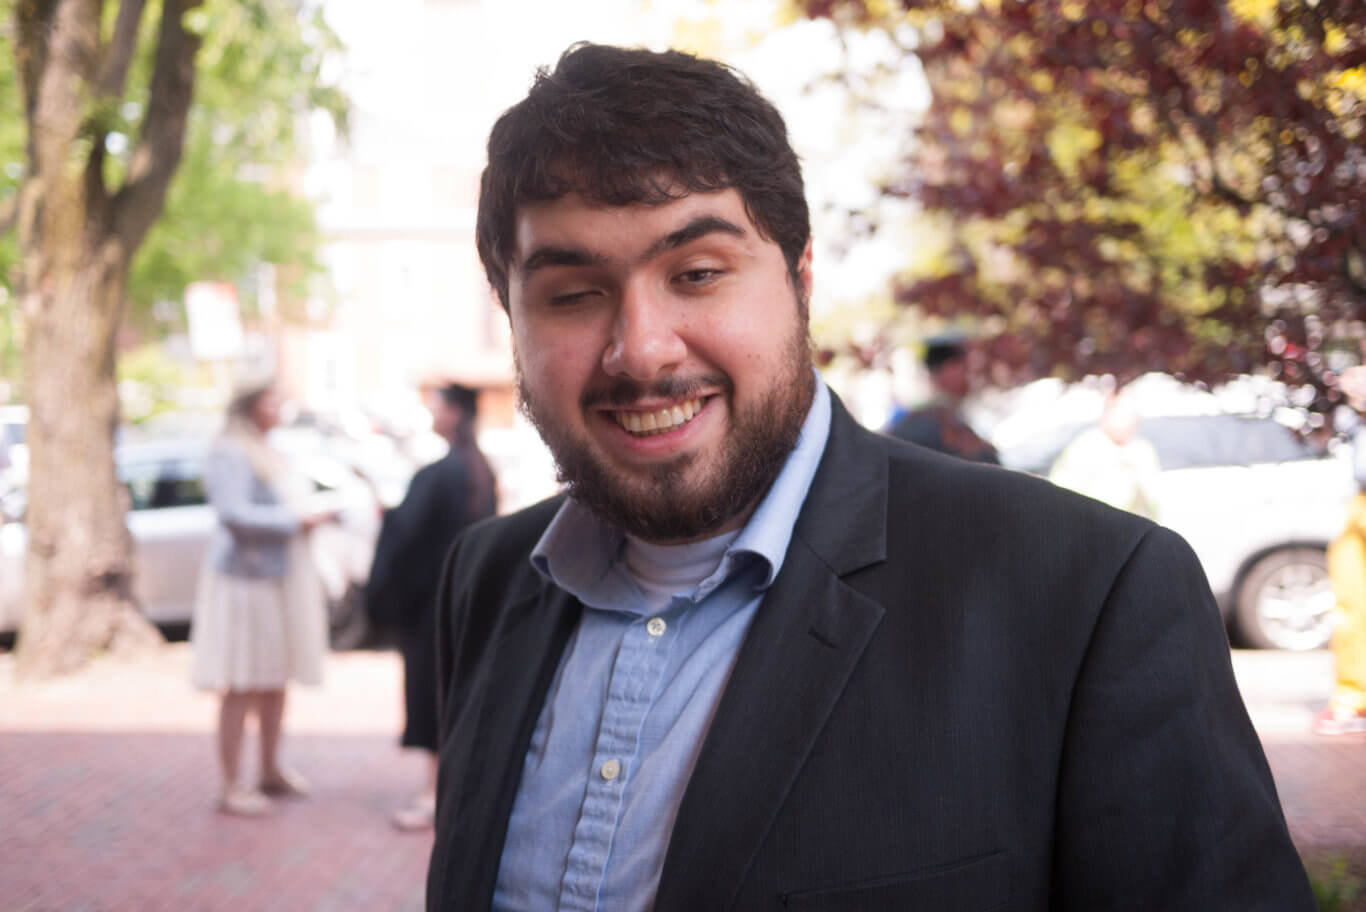 Sina Bahram, a bearded light-skinned man with dark hair smiles brightly to us on a sunny day